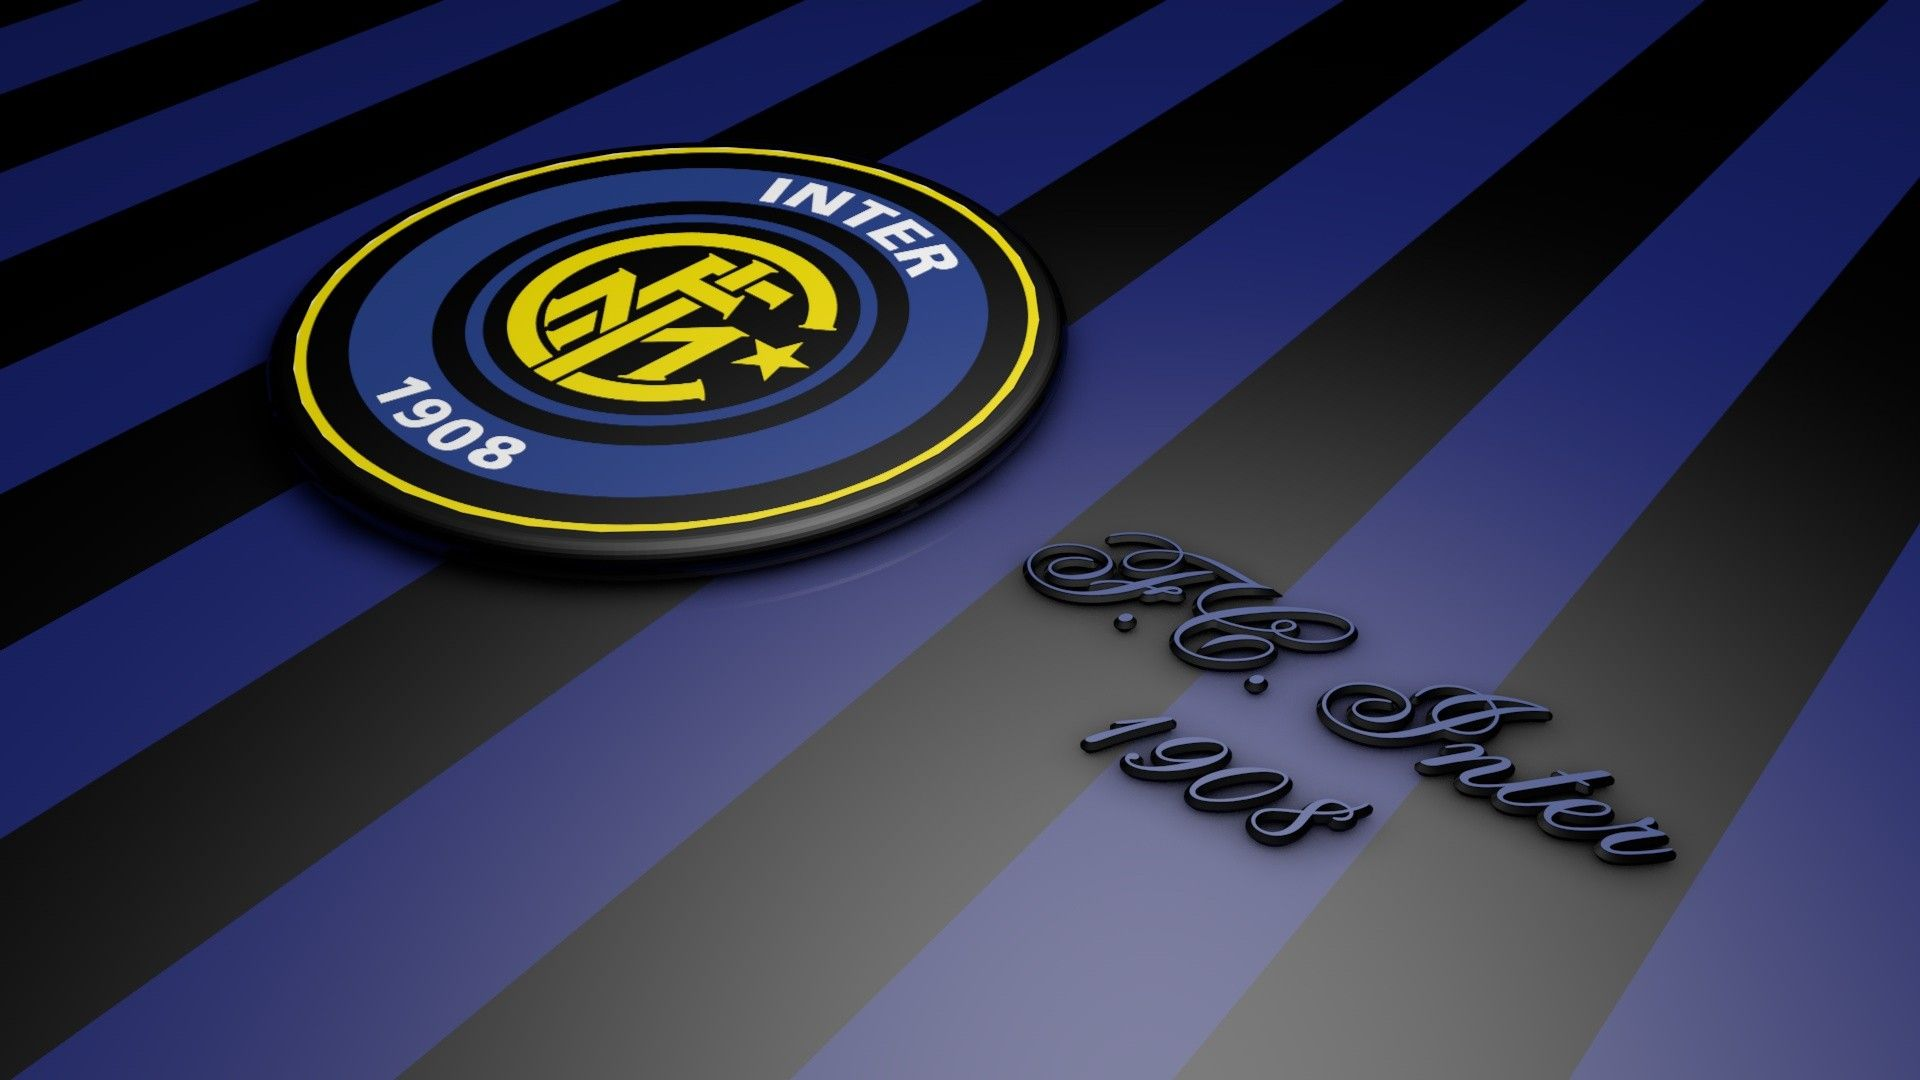 sun inter milan logo - photo #9